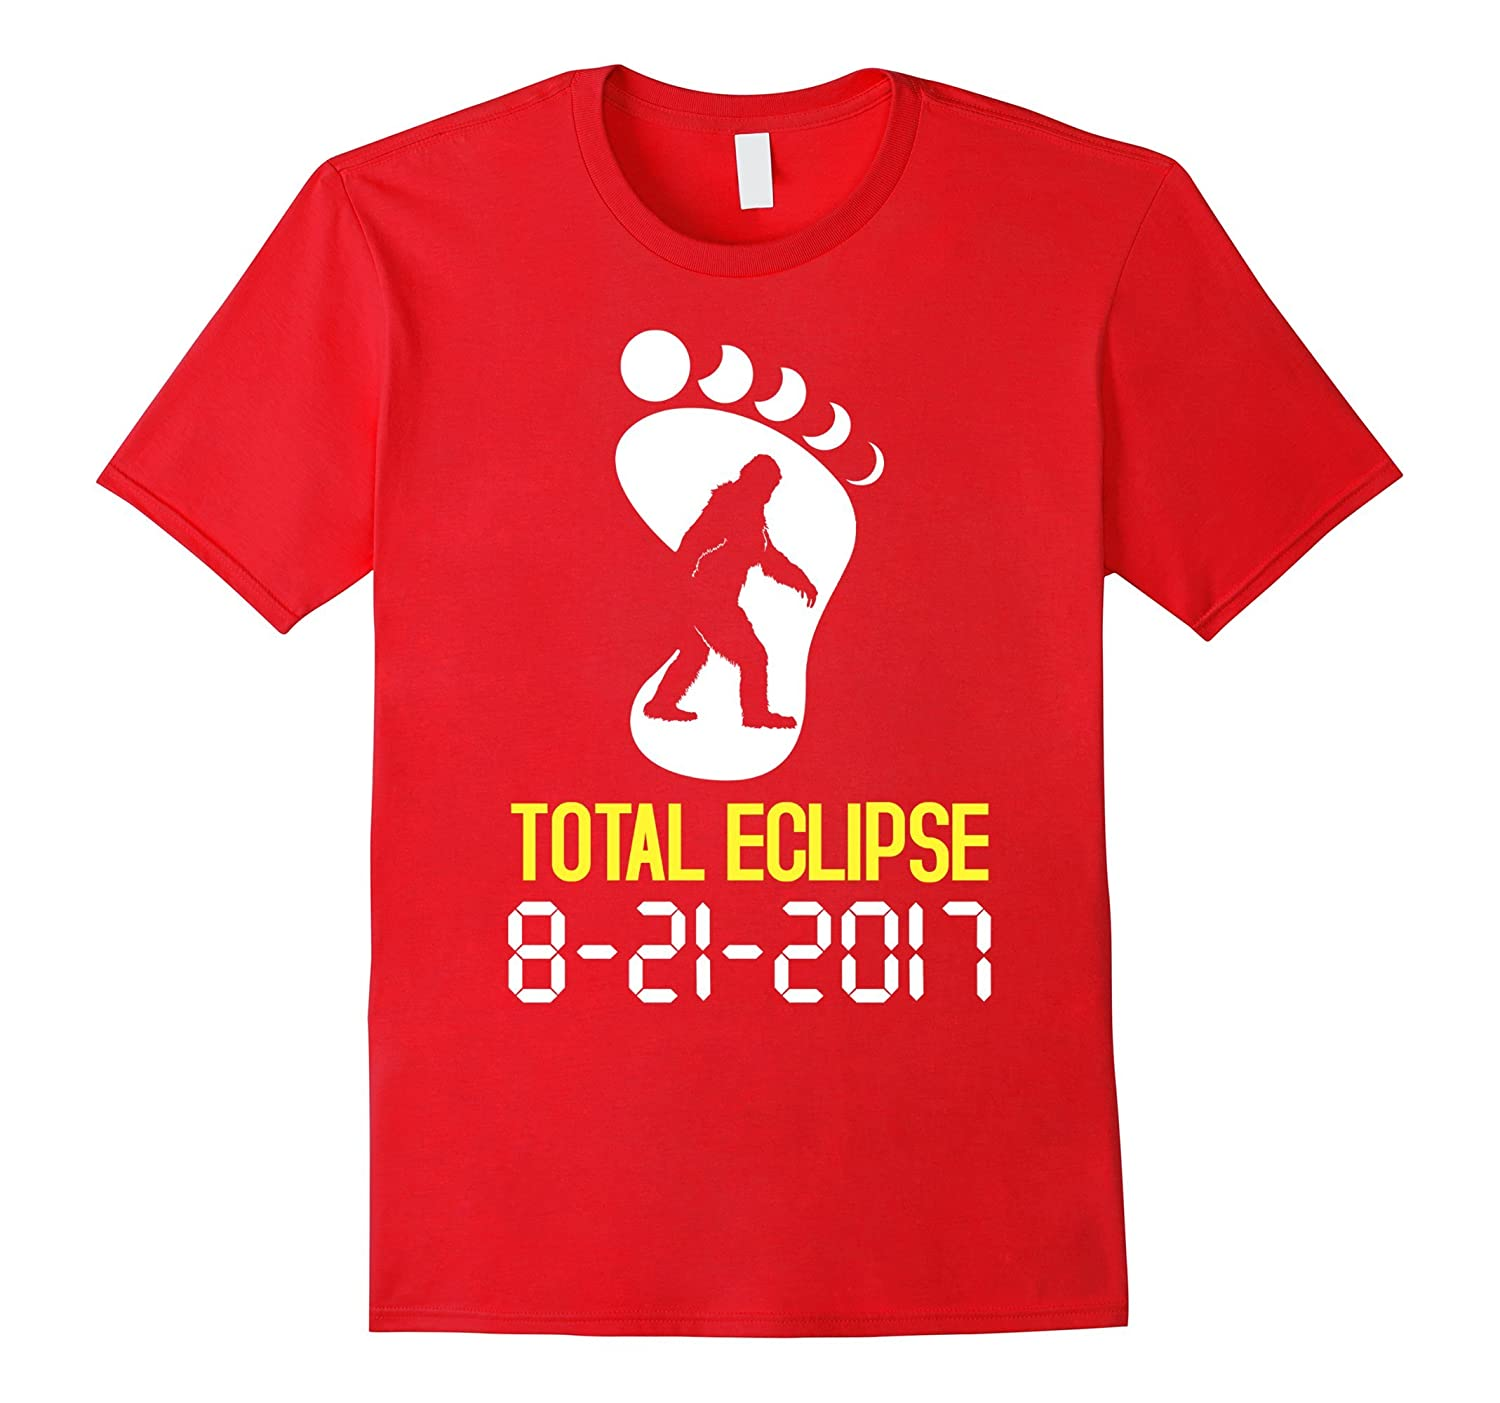 Big foot Oregon Total Eclipse 2017 Cool T-Shirt